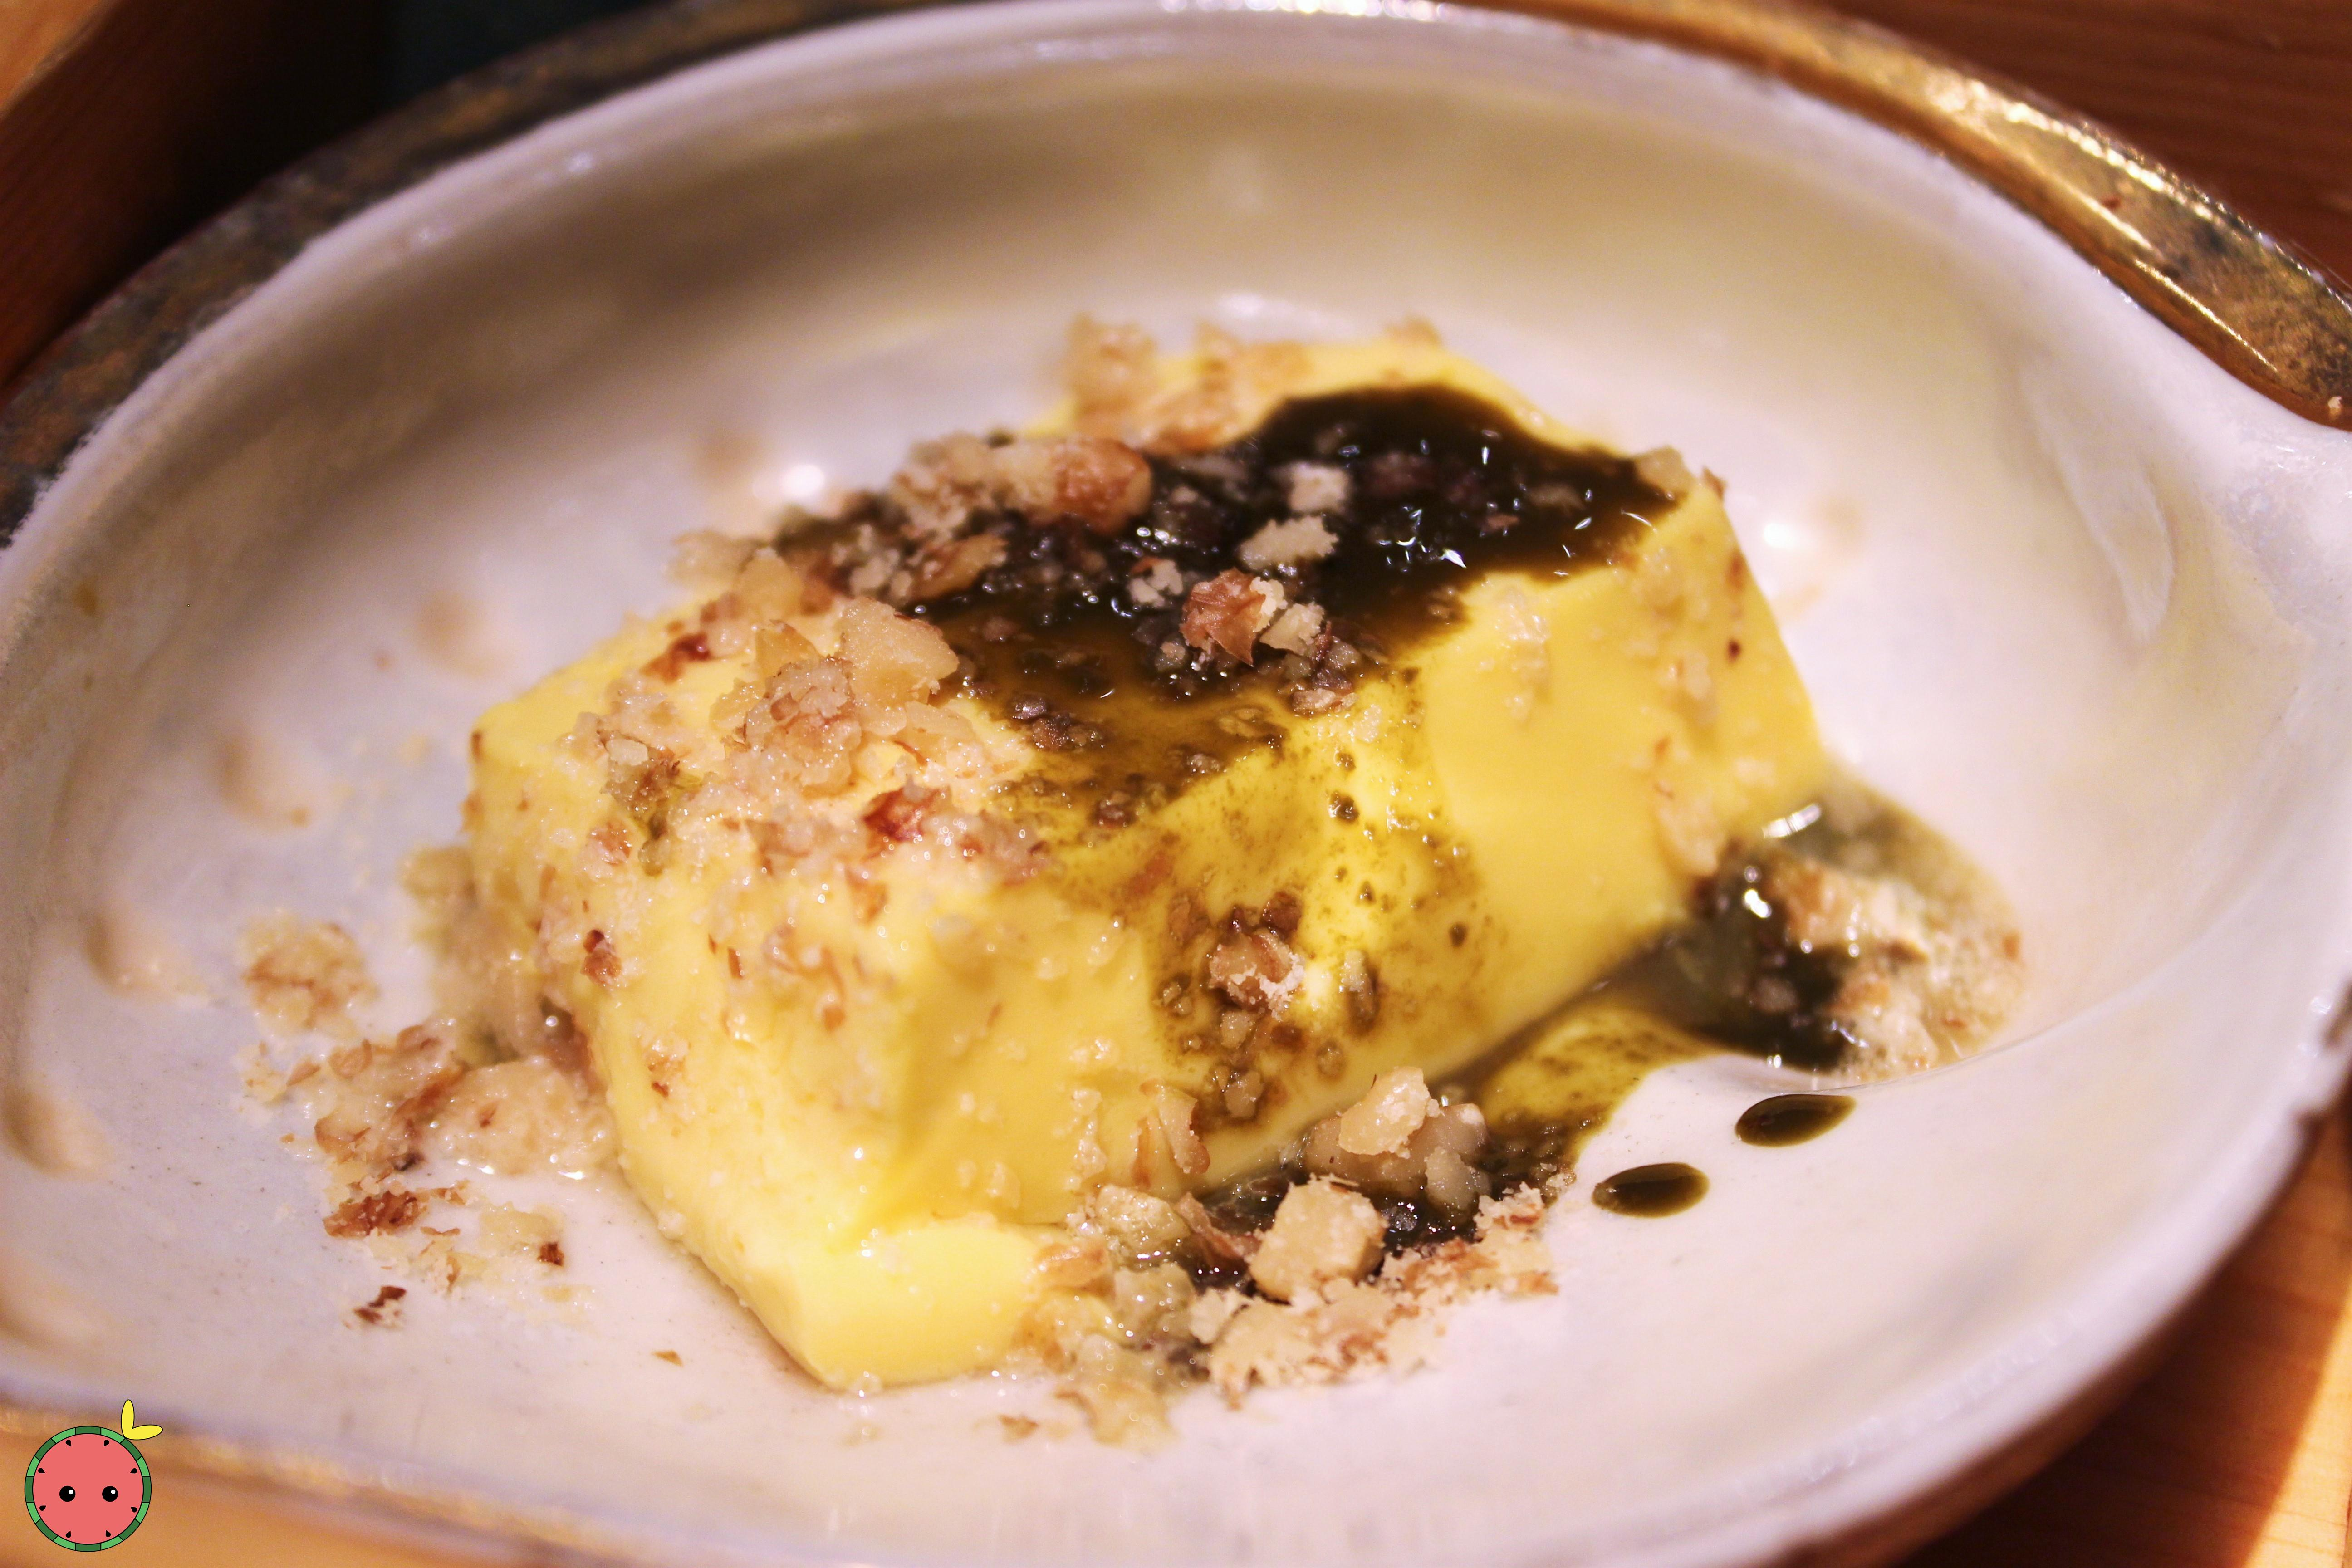 Organic egg tofu with abalone liver sauce and walnuts